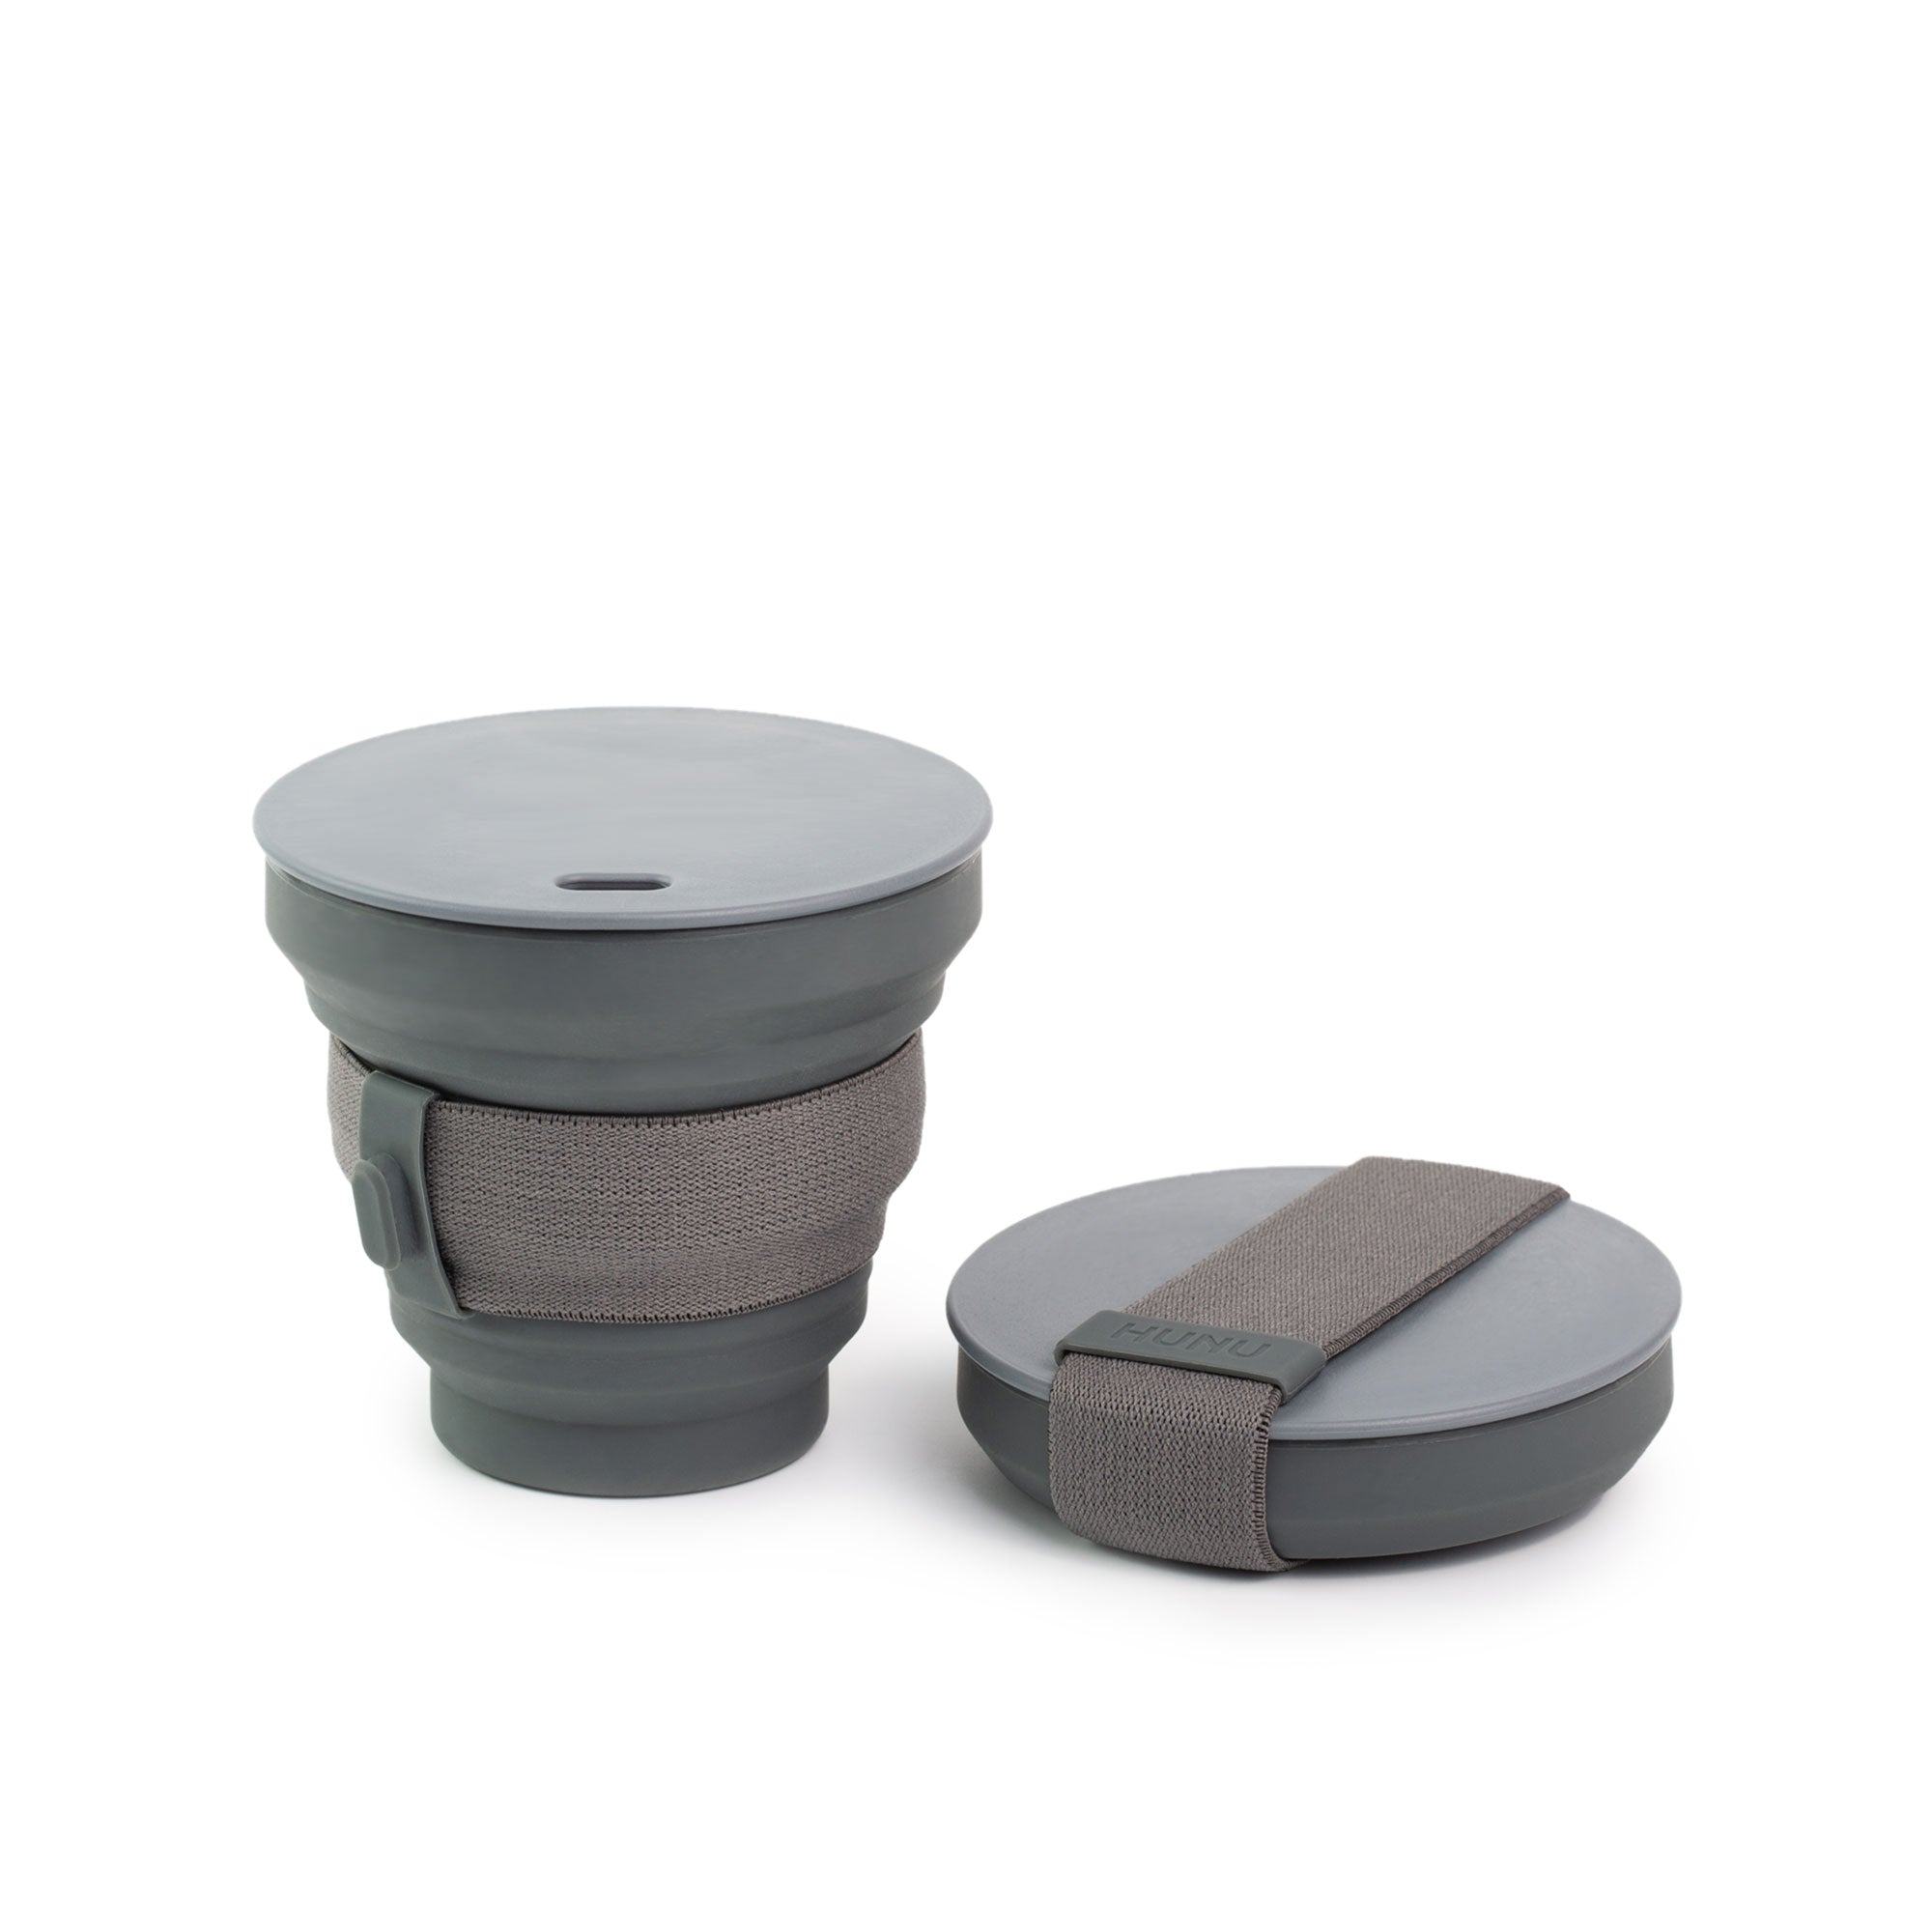 HUNU - The Pocket Sized Cup in Charcoal